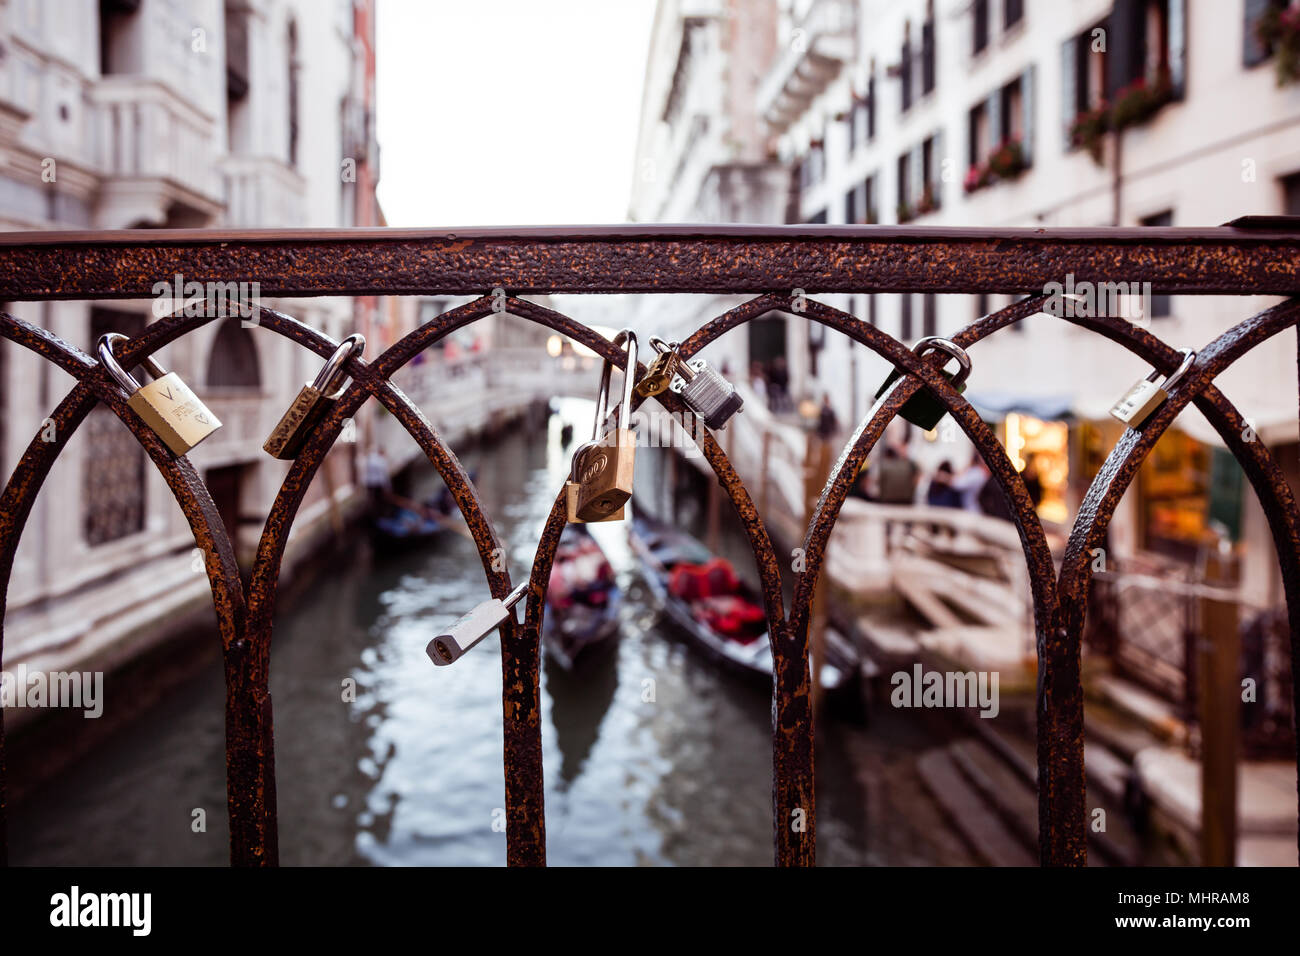 Lovers padlocks on a bridge in Venice, Italy - Stock Image